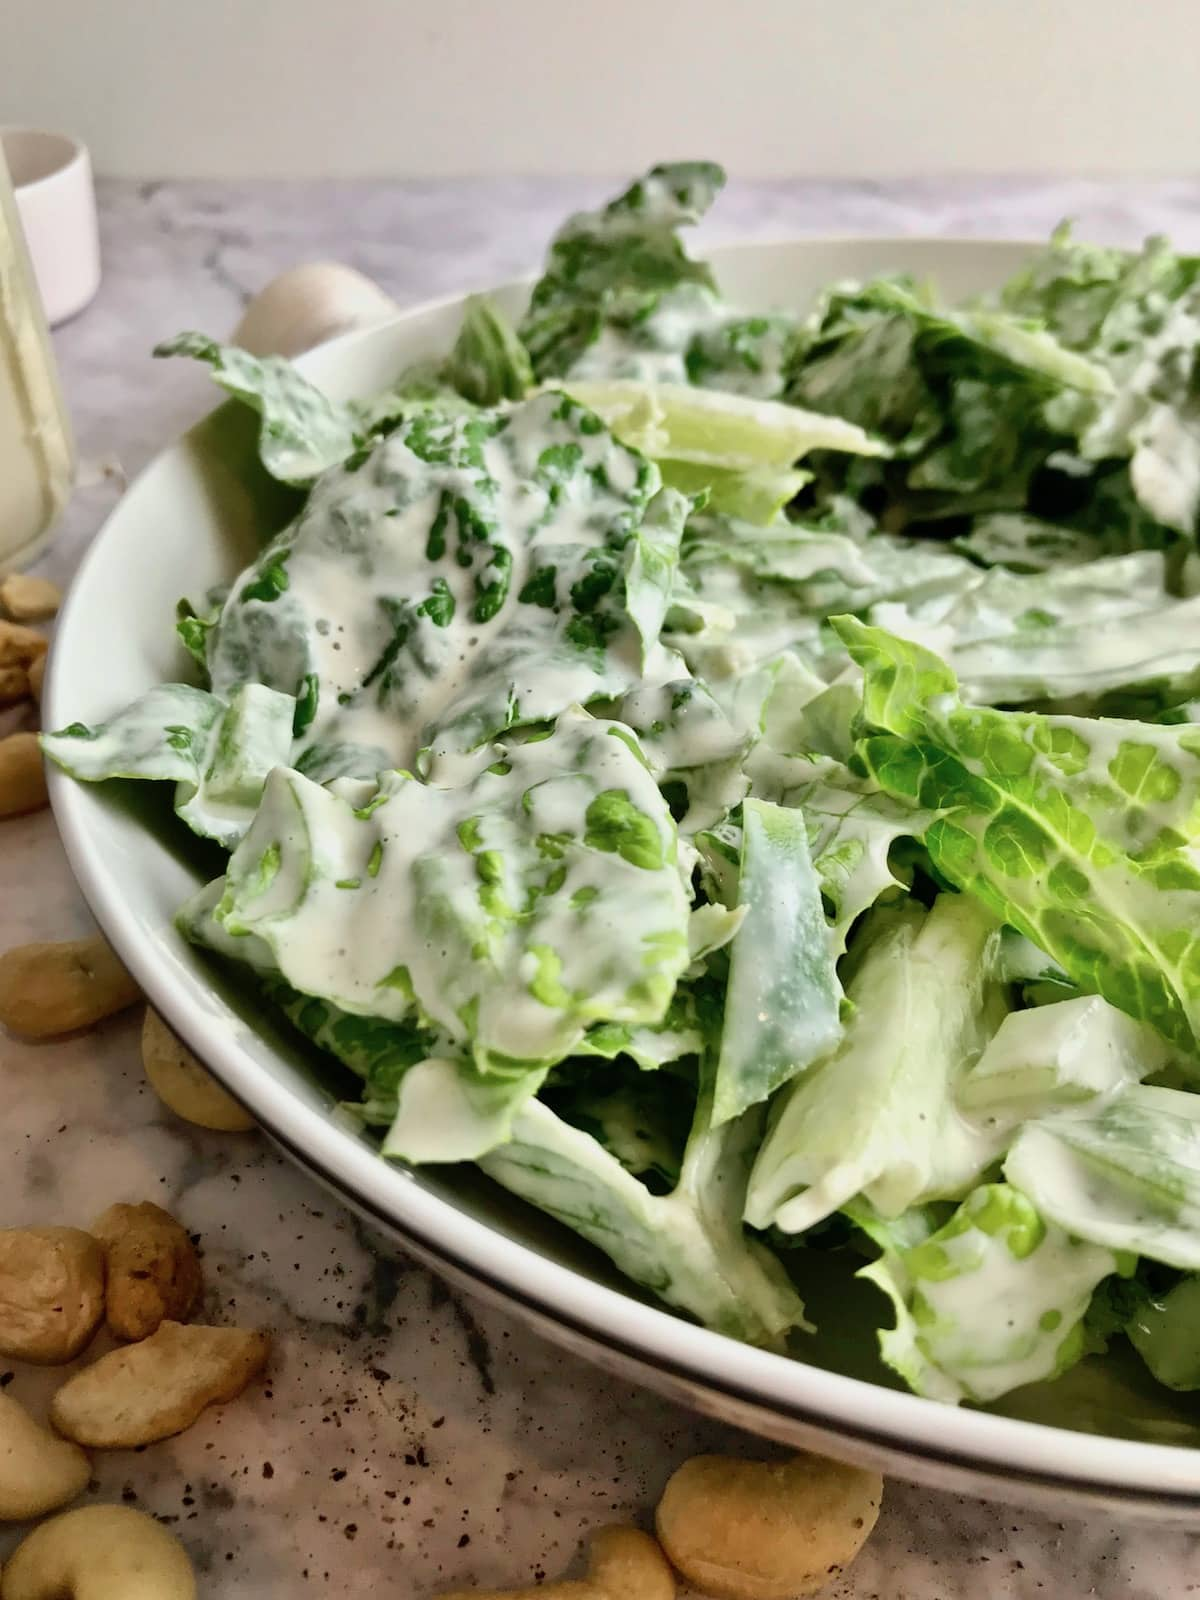 A bowl of romaine lettuce covered in white dressing.